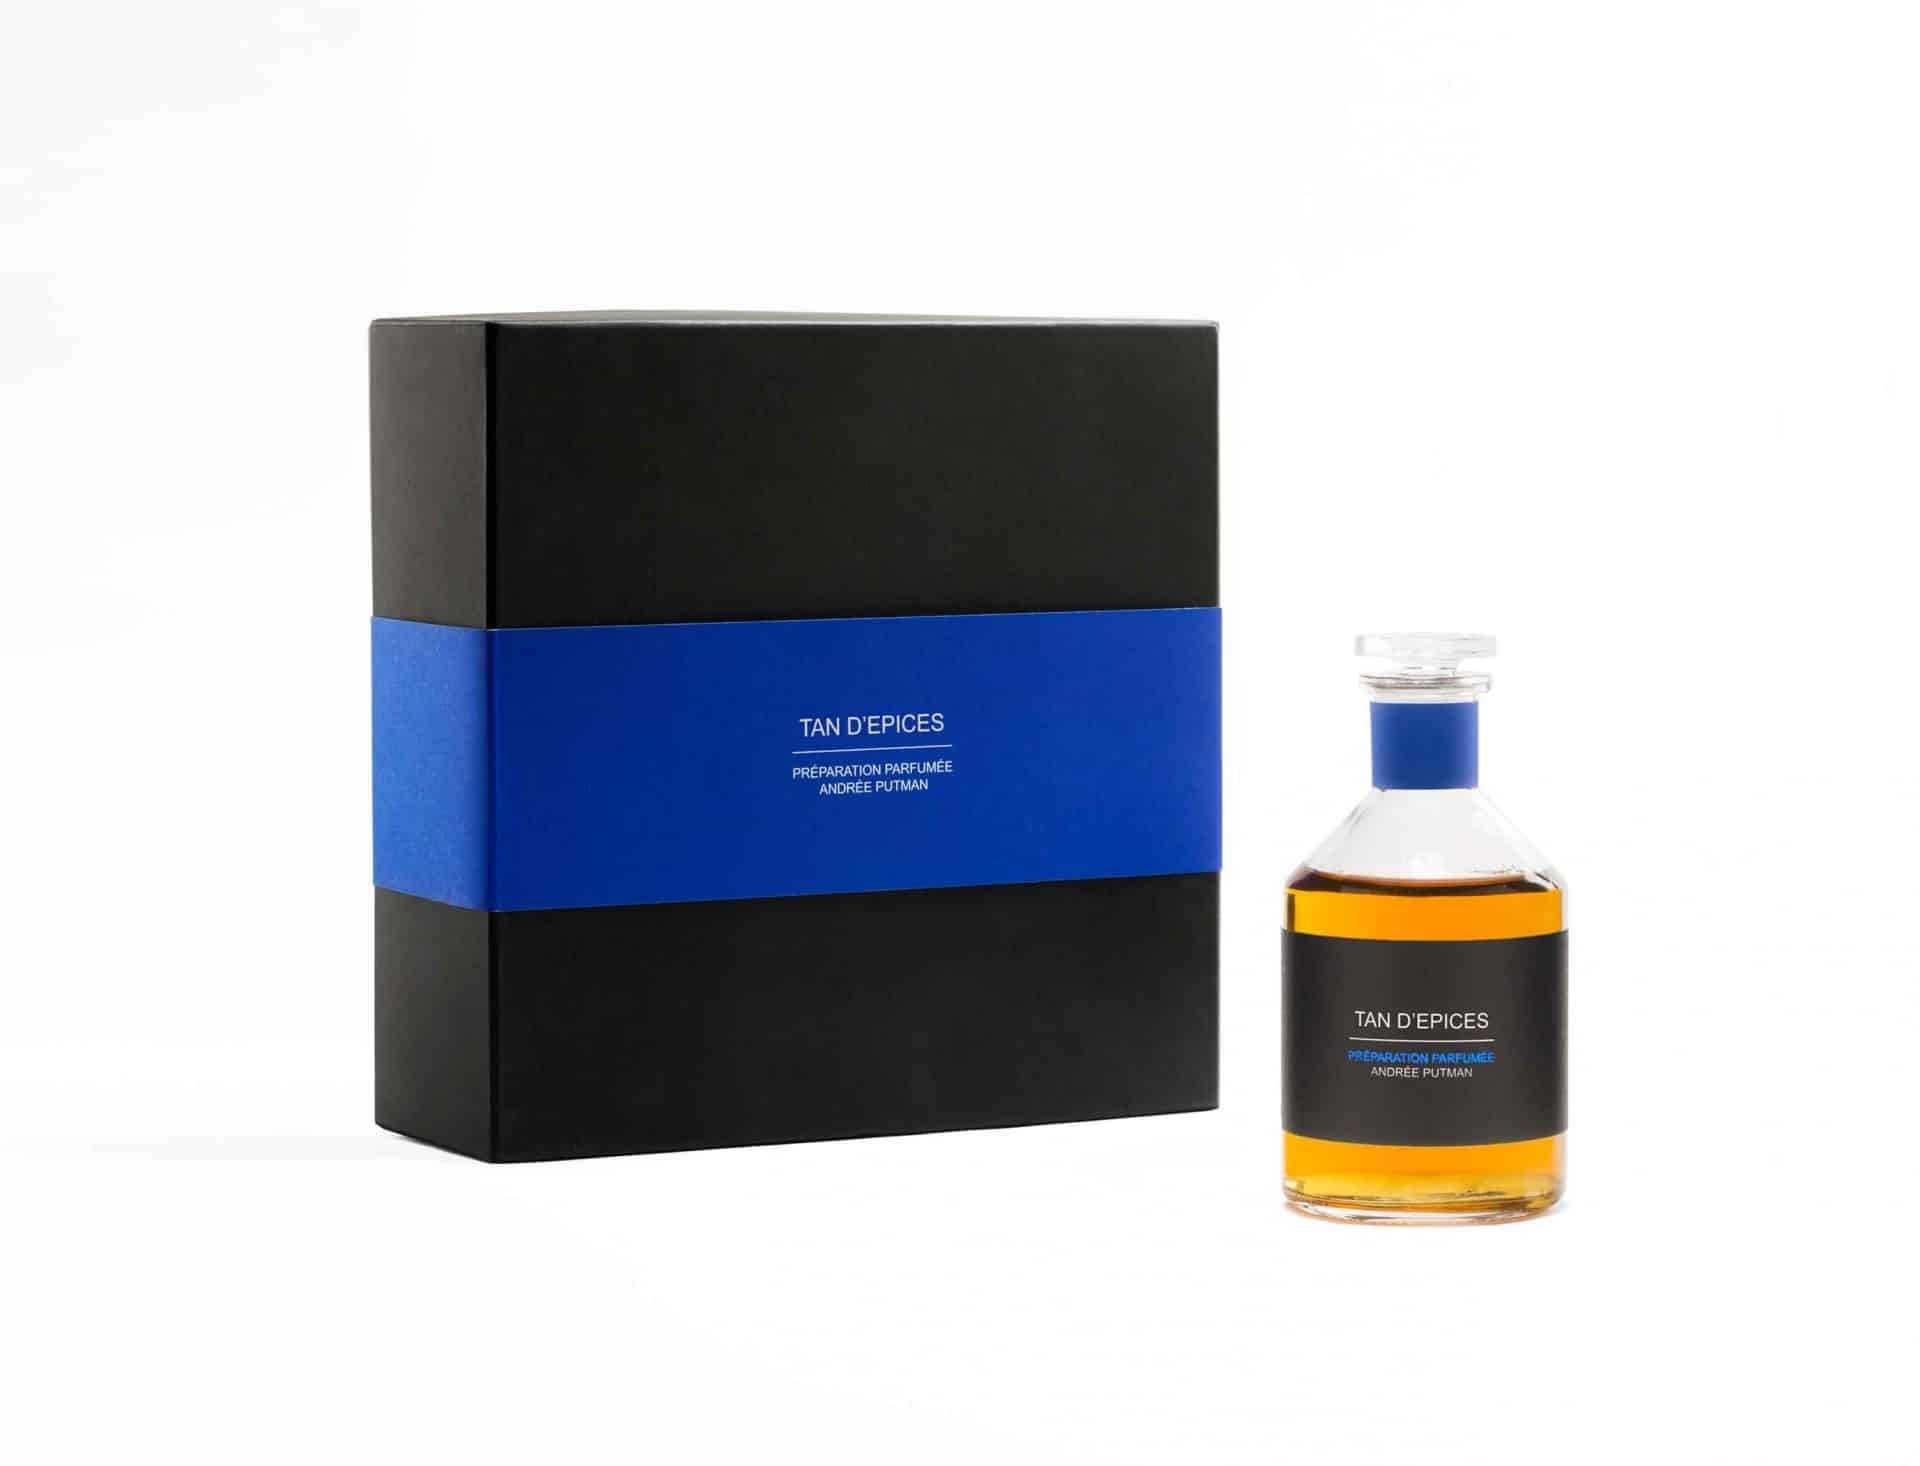 TAN D'EPICES by Andree Putman, £60/30ml, www.averyperfumegallery.co.uk